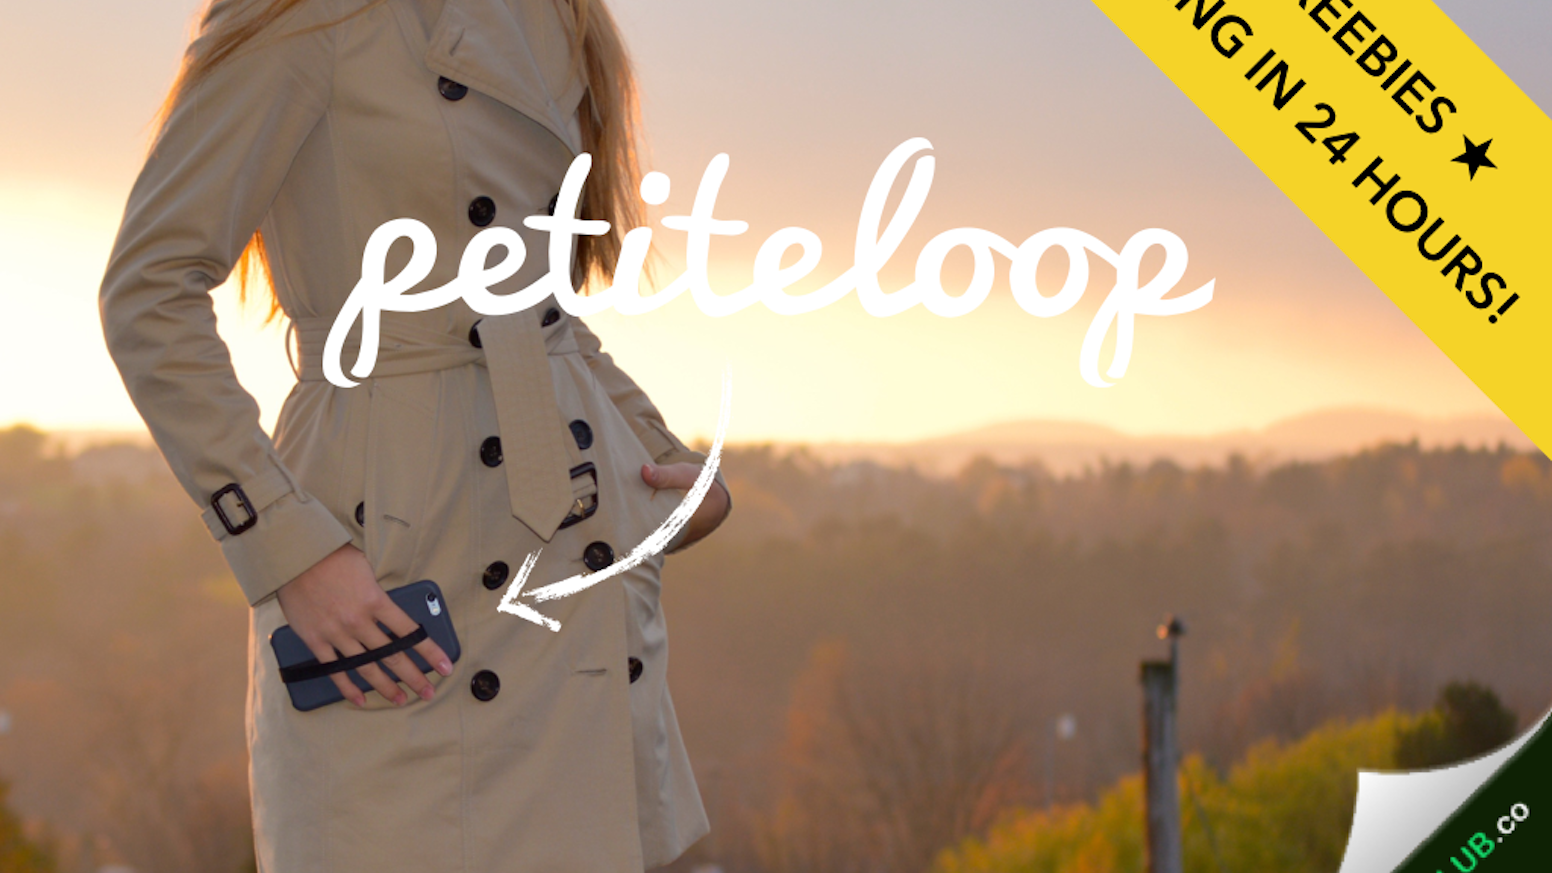 Petite loop is a must-have accessory compatible with any smart phone case - finally, a phone leash that fits your lifestyle!